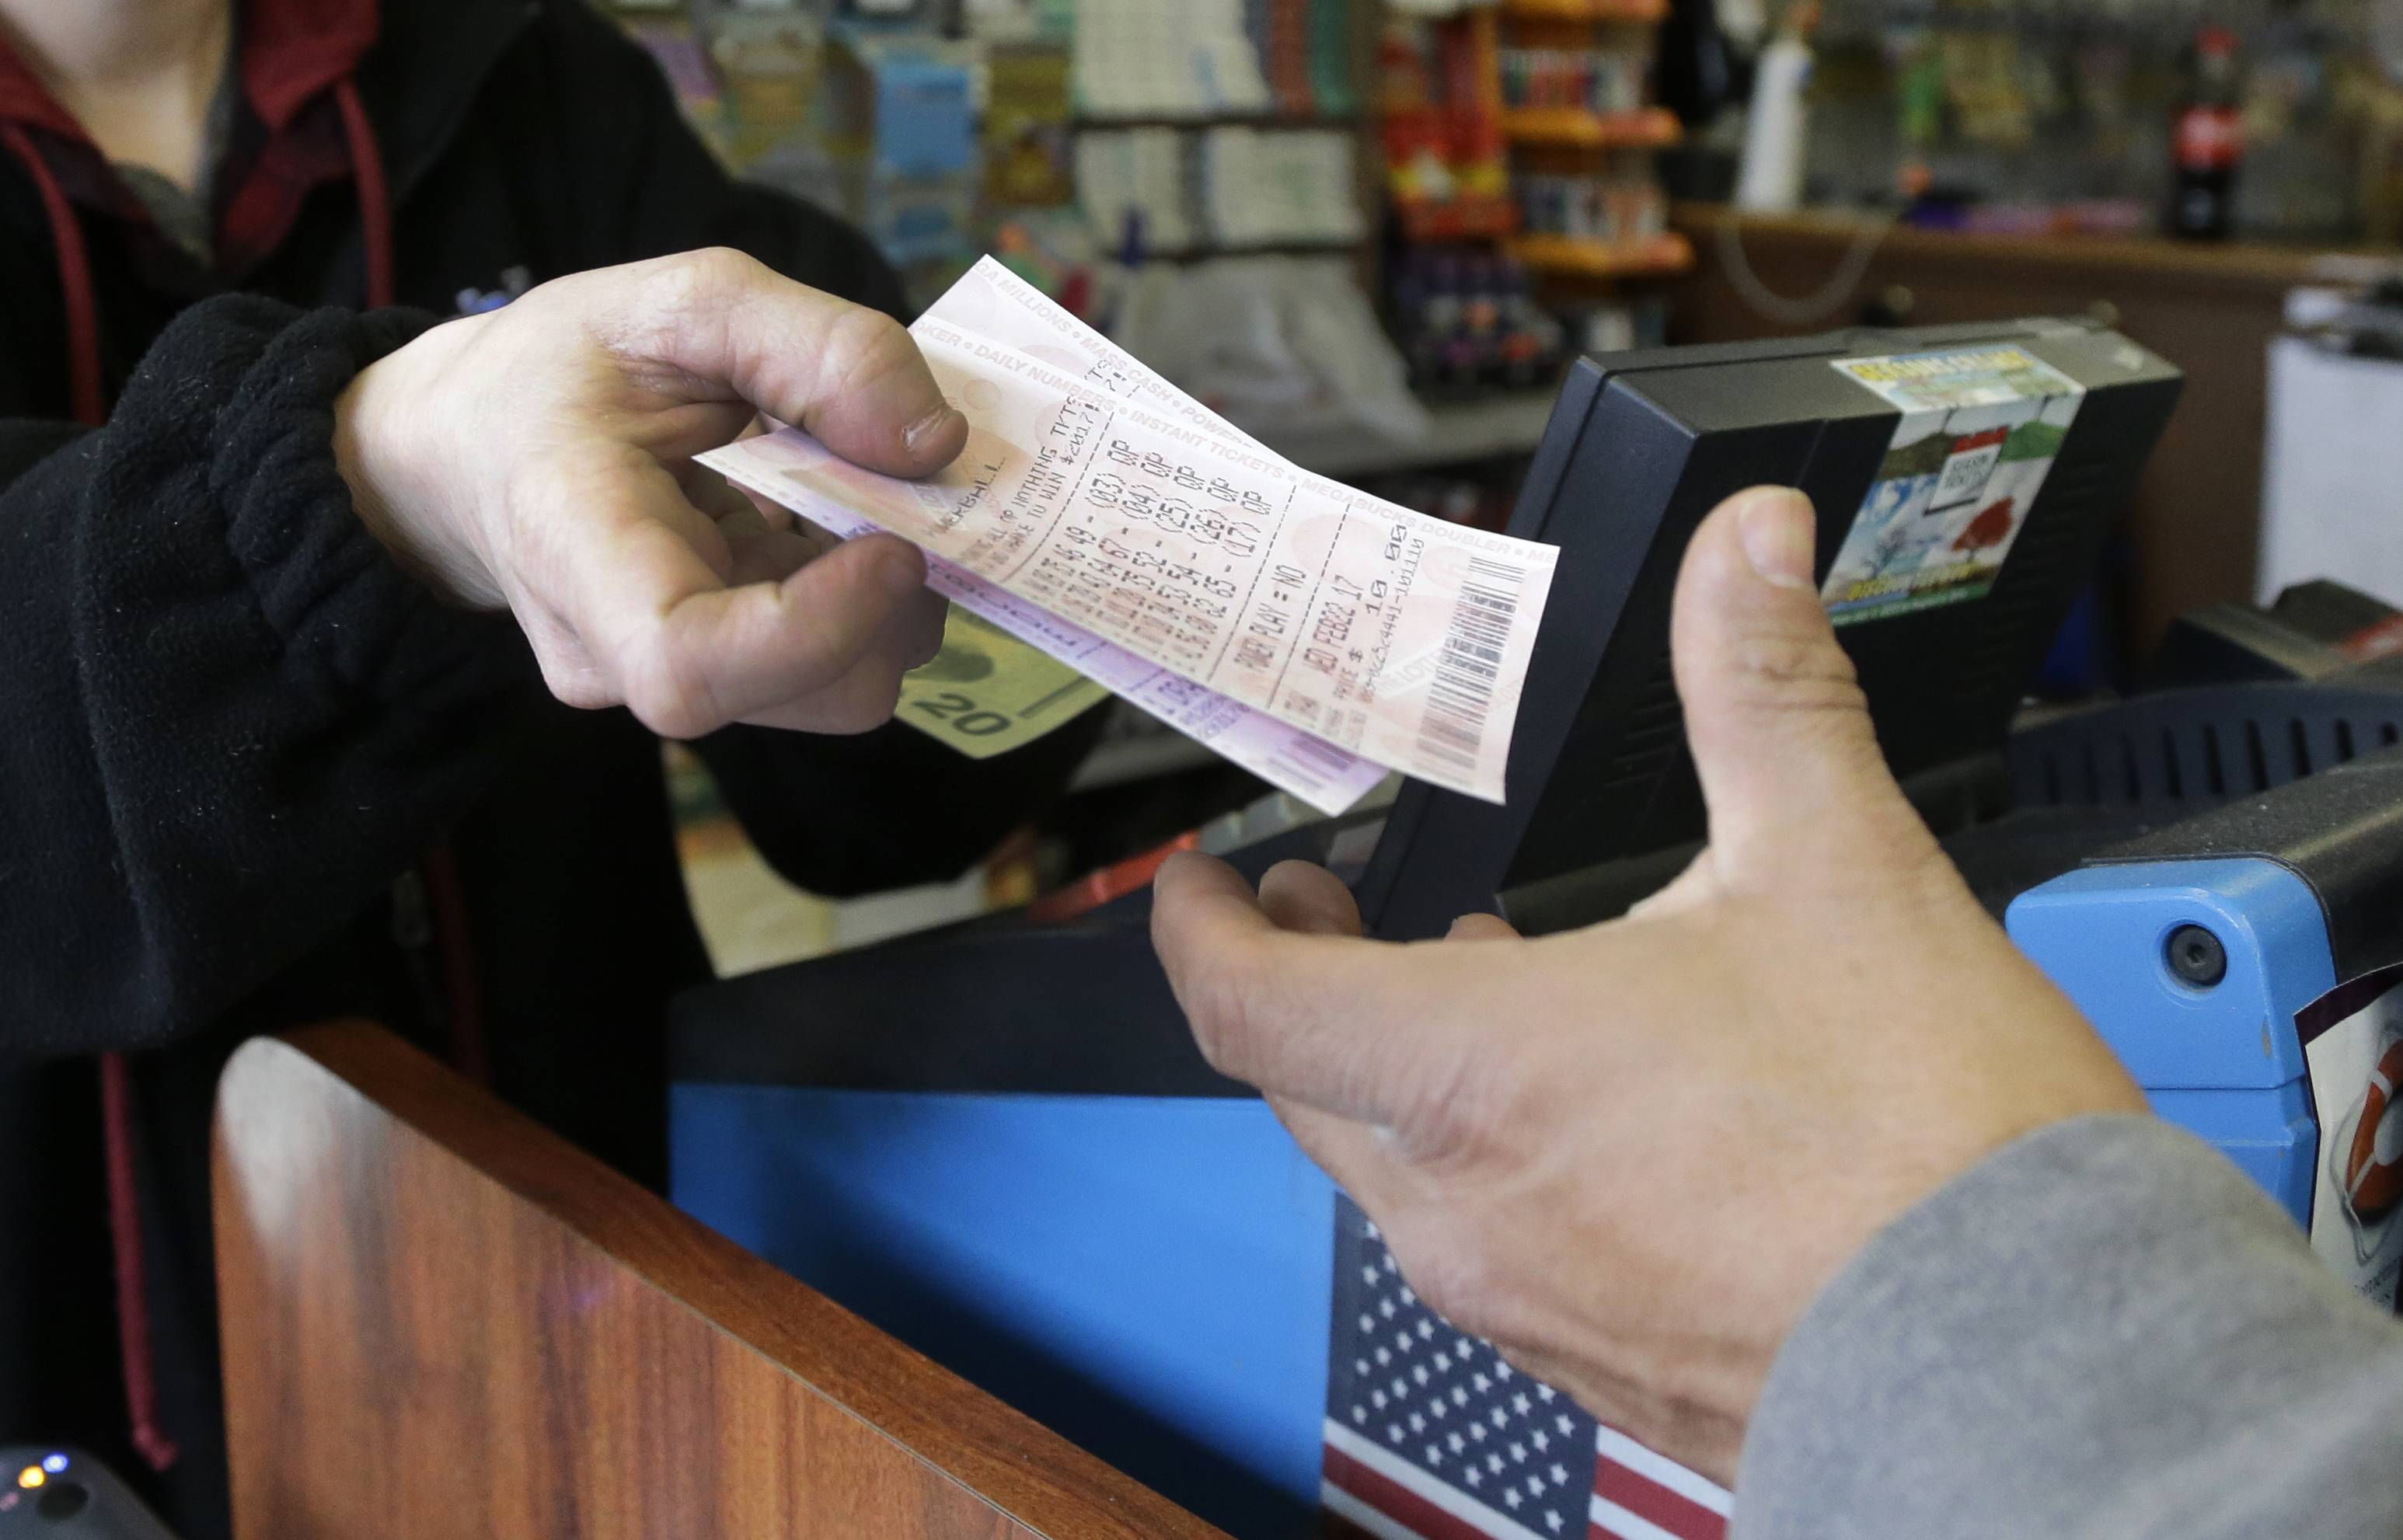 An Indiana lottery official says the sole winning ticket for an estimated $435 million Powerball jackpot was sold in Lafayette.